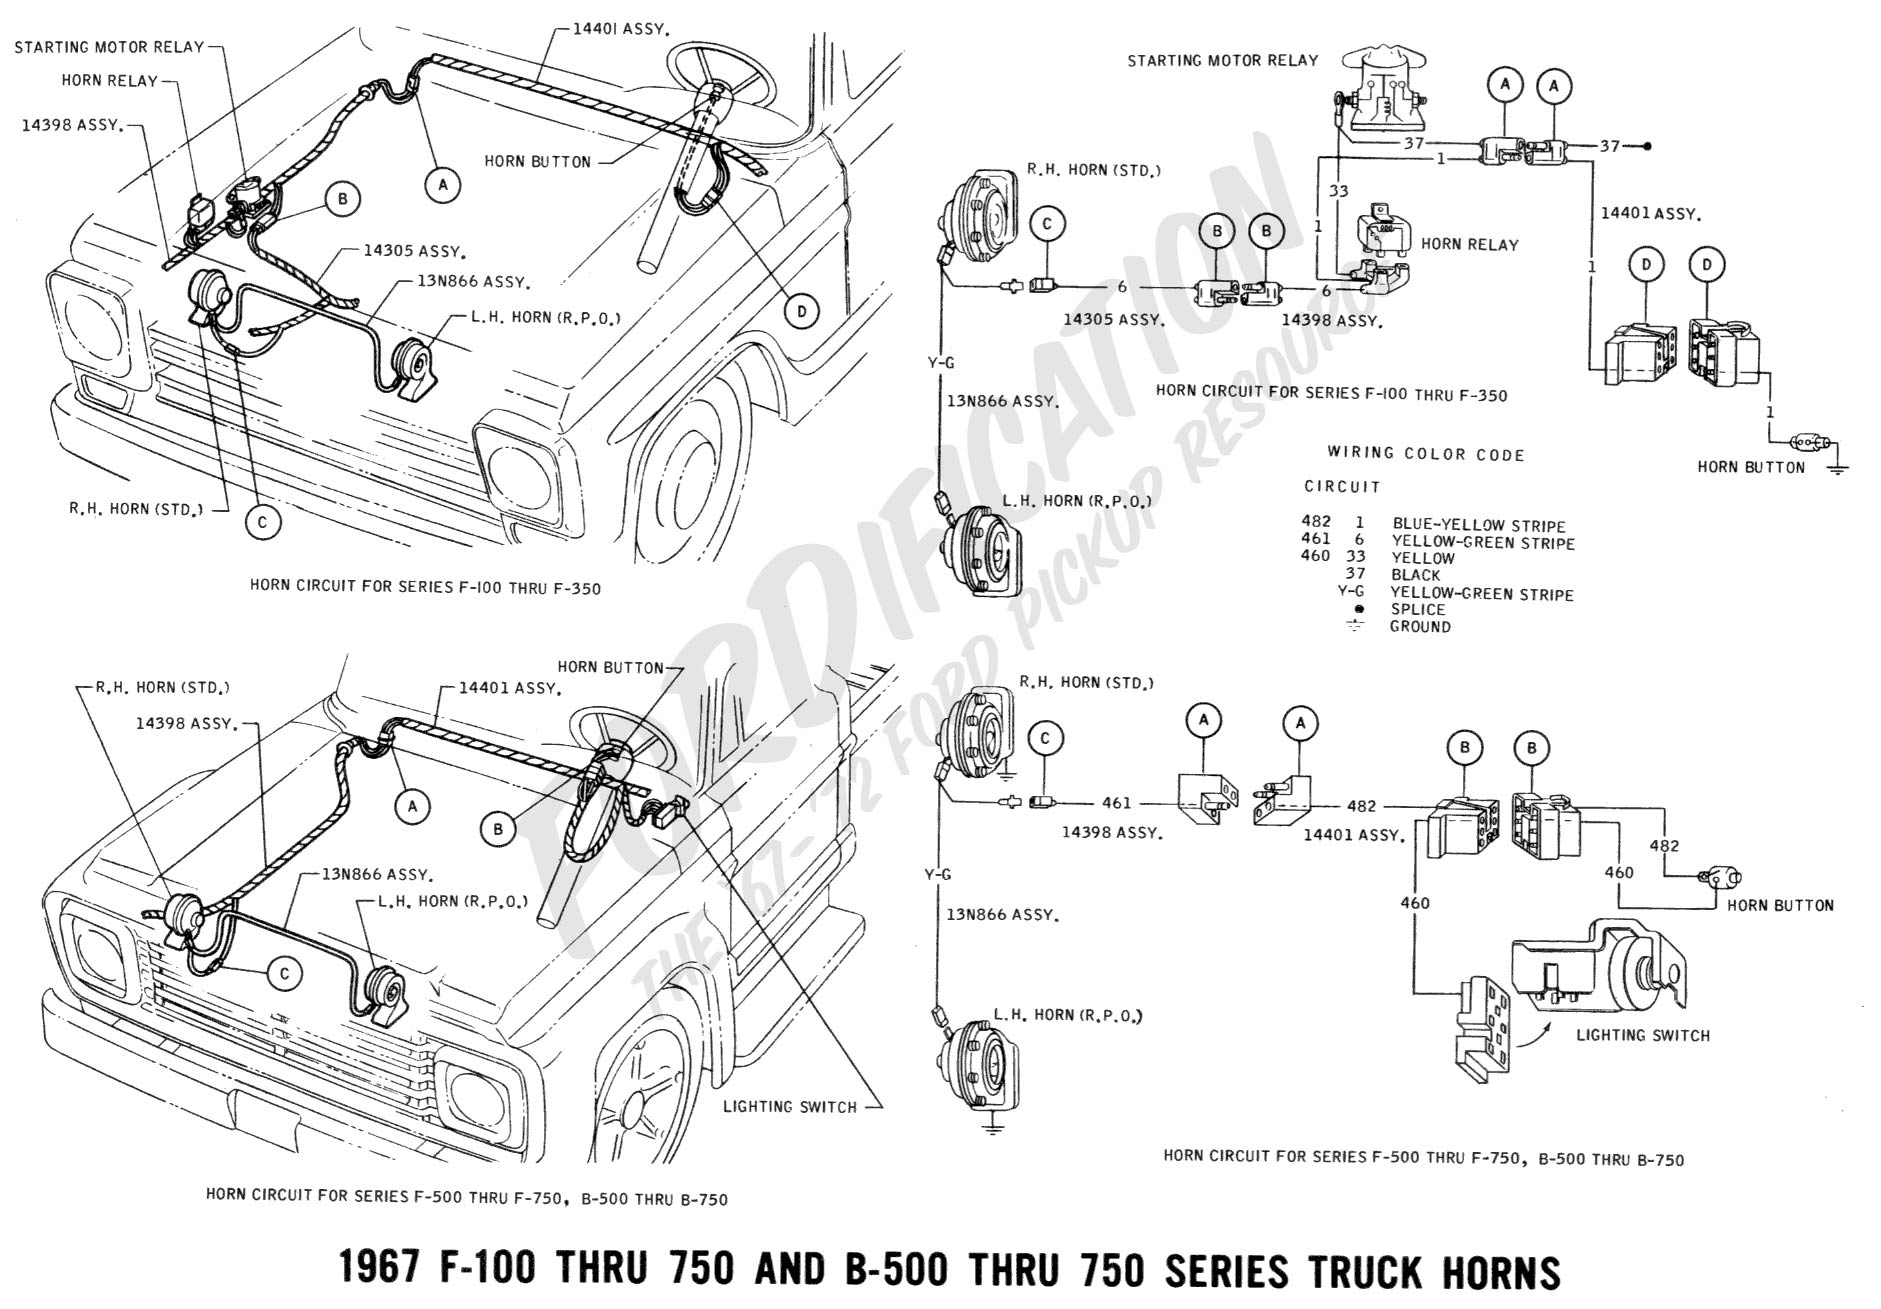 Isuzu Rodeo Starter Location Free Engine Image For additionally Gmc Drivetrain Diagram as well 1989 Toyota 4runner Fuel Pump Wiring Diagram together with 97 Chevy Astro Van Engine Diagram further 2007 Silverado Tailgate Diagram. on chevy neutral safety switch wiring diagram for 99